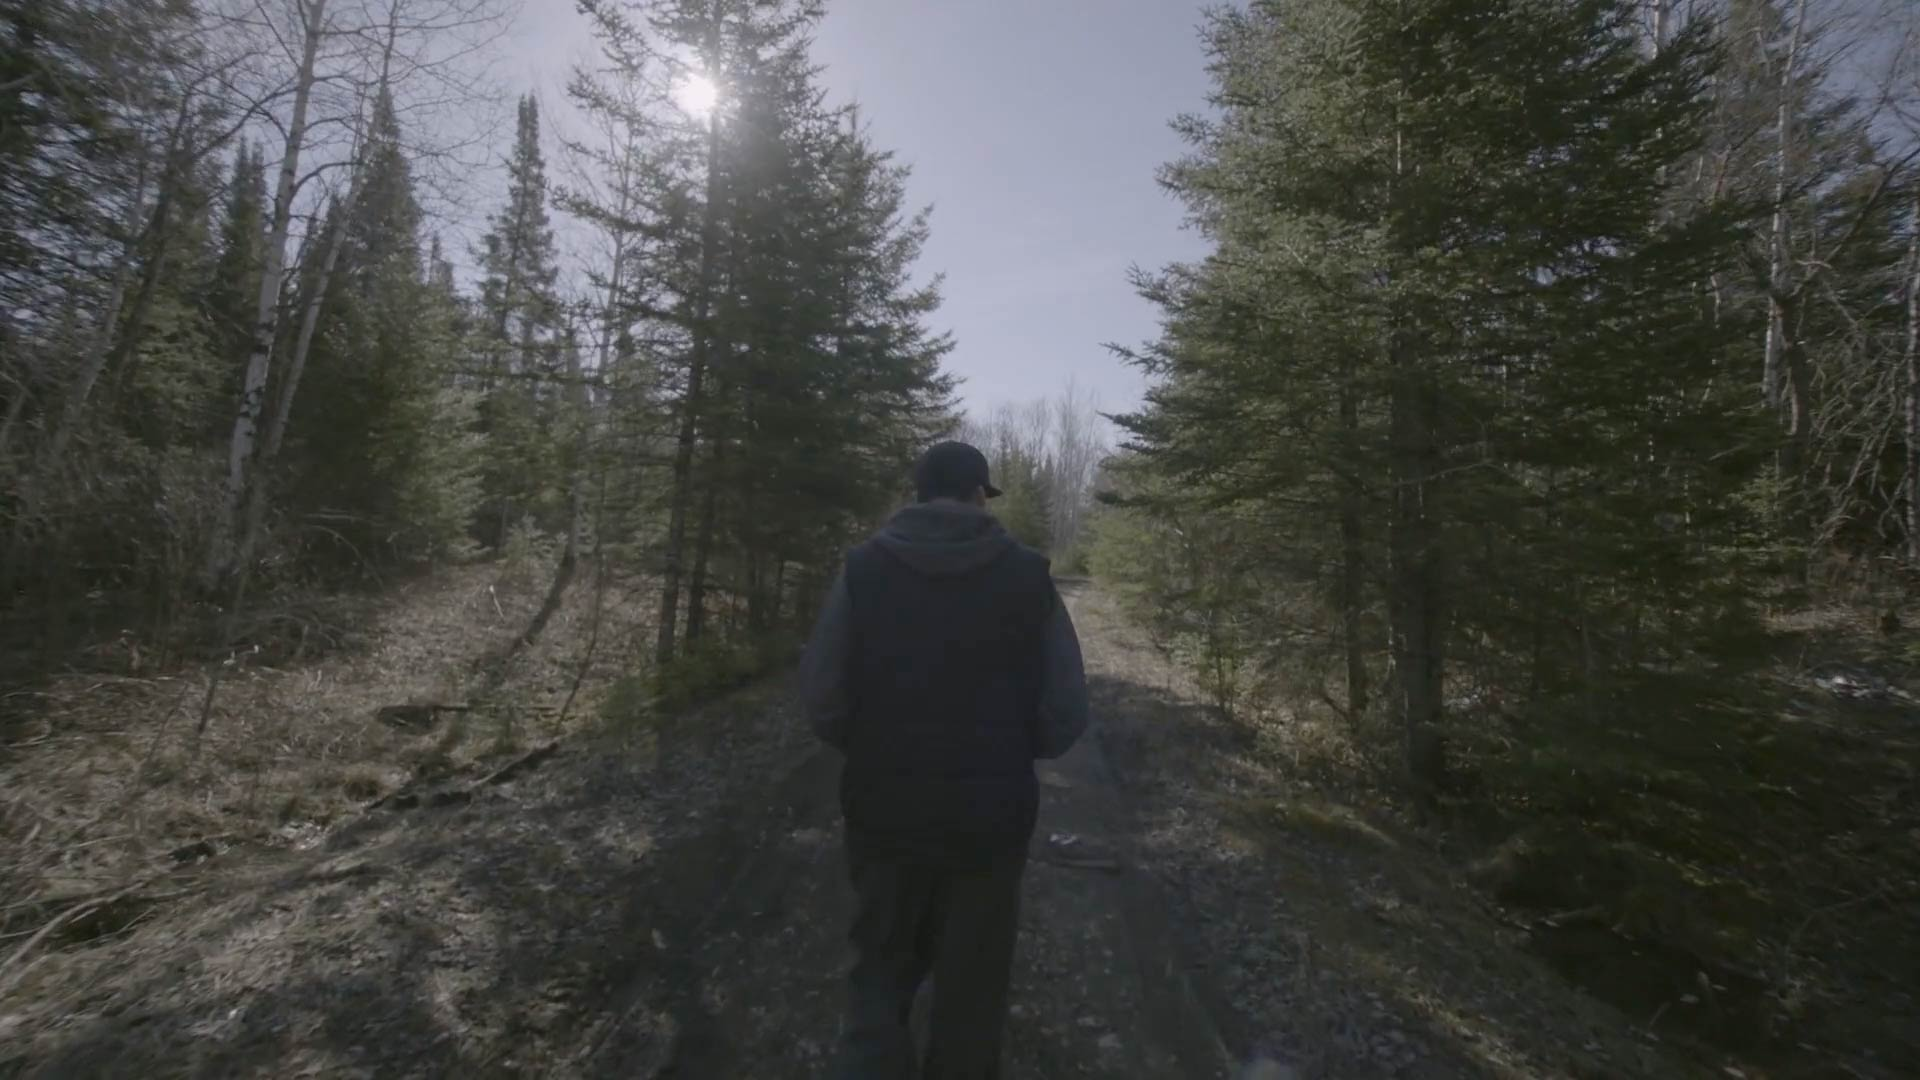 An image of a man walking in a forest with pine trees.